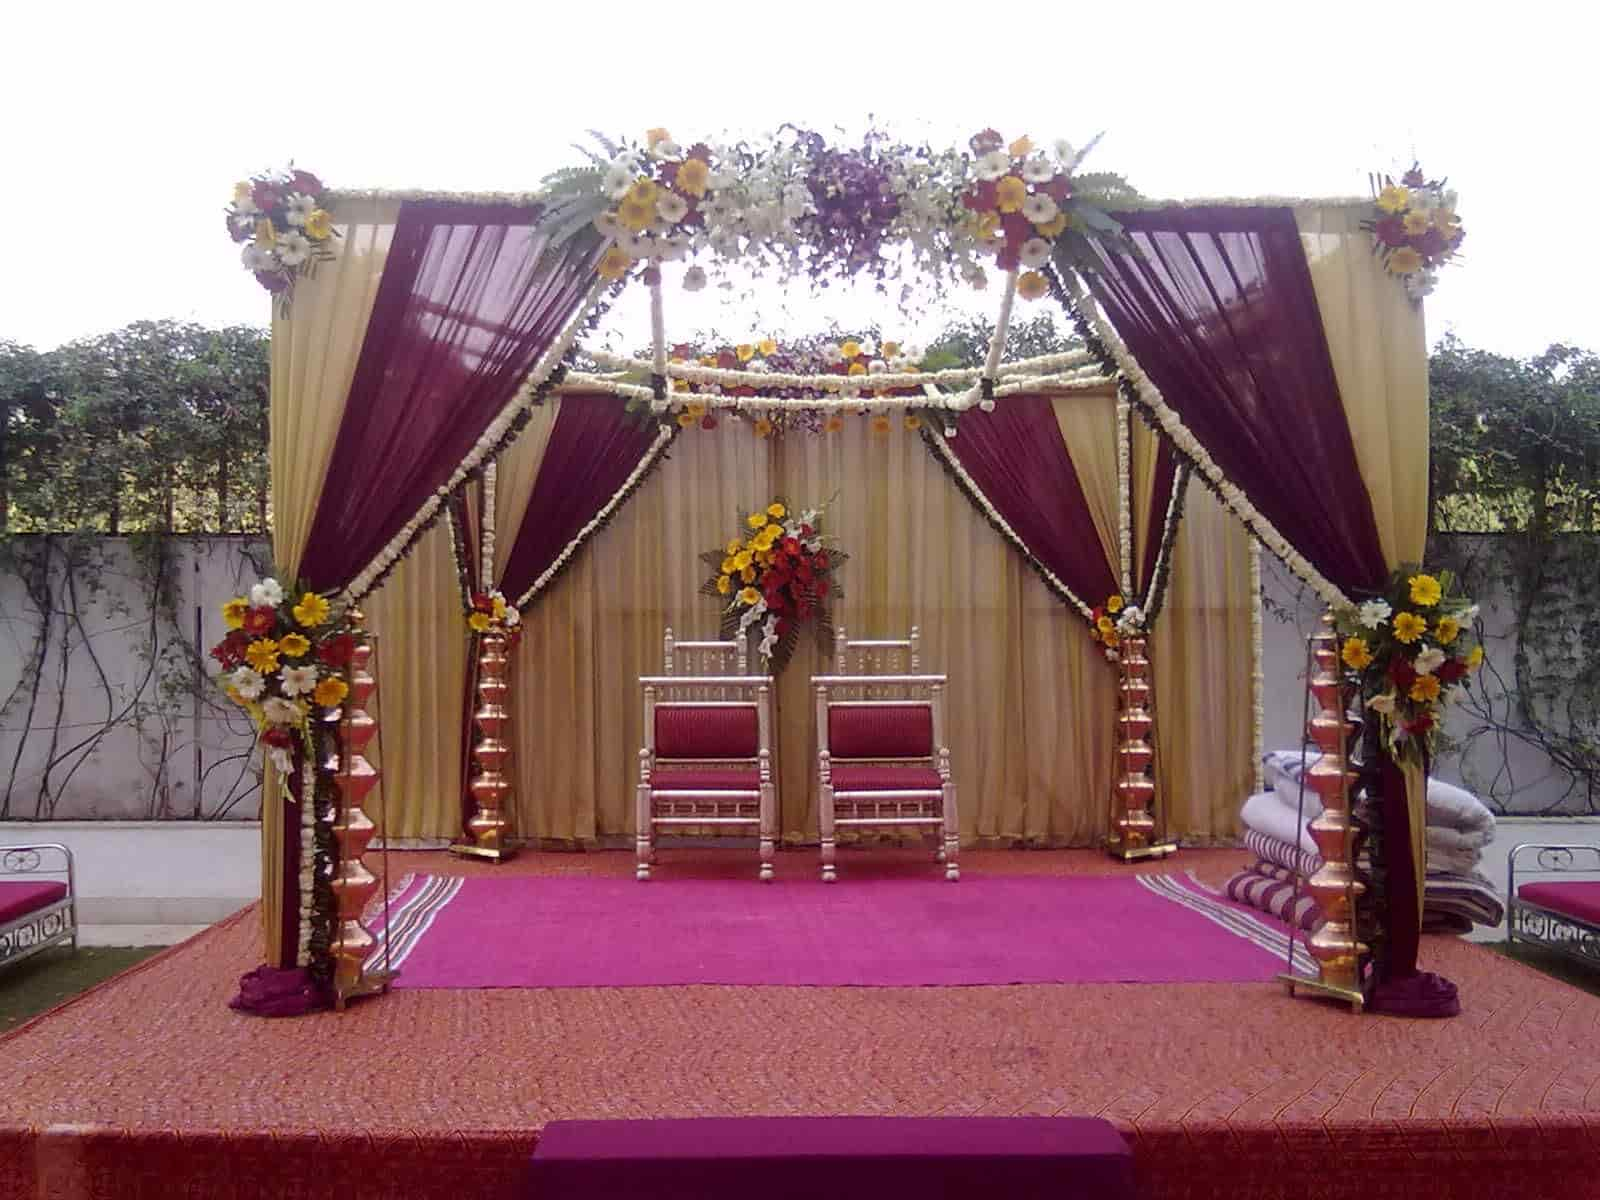 to blogs that in up not setting stage is venues decorations fileminimizer img decor make decoration tips bangalore wedding hassle modified reception sure a